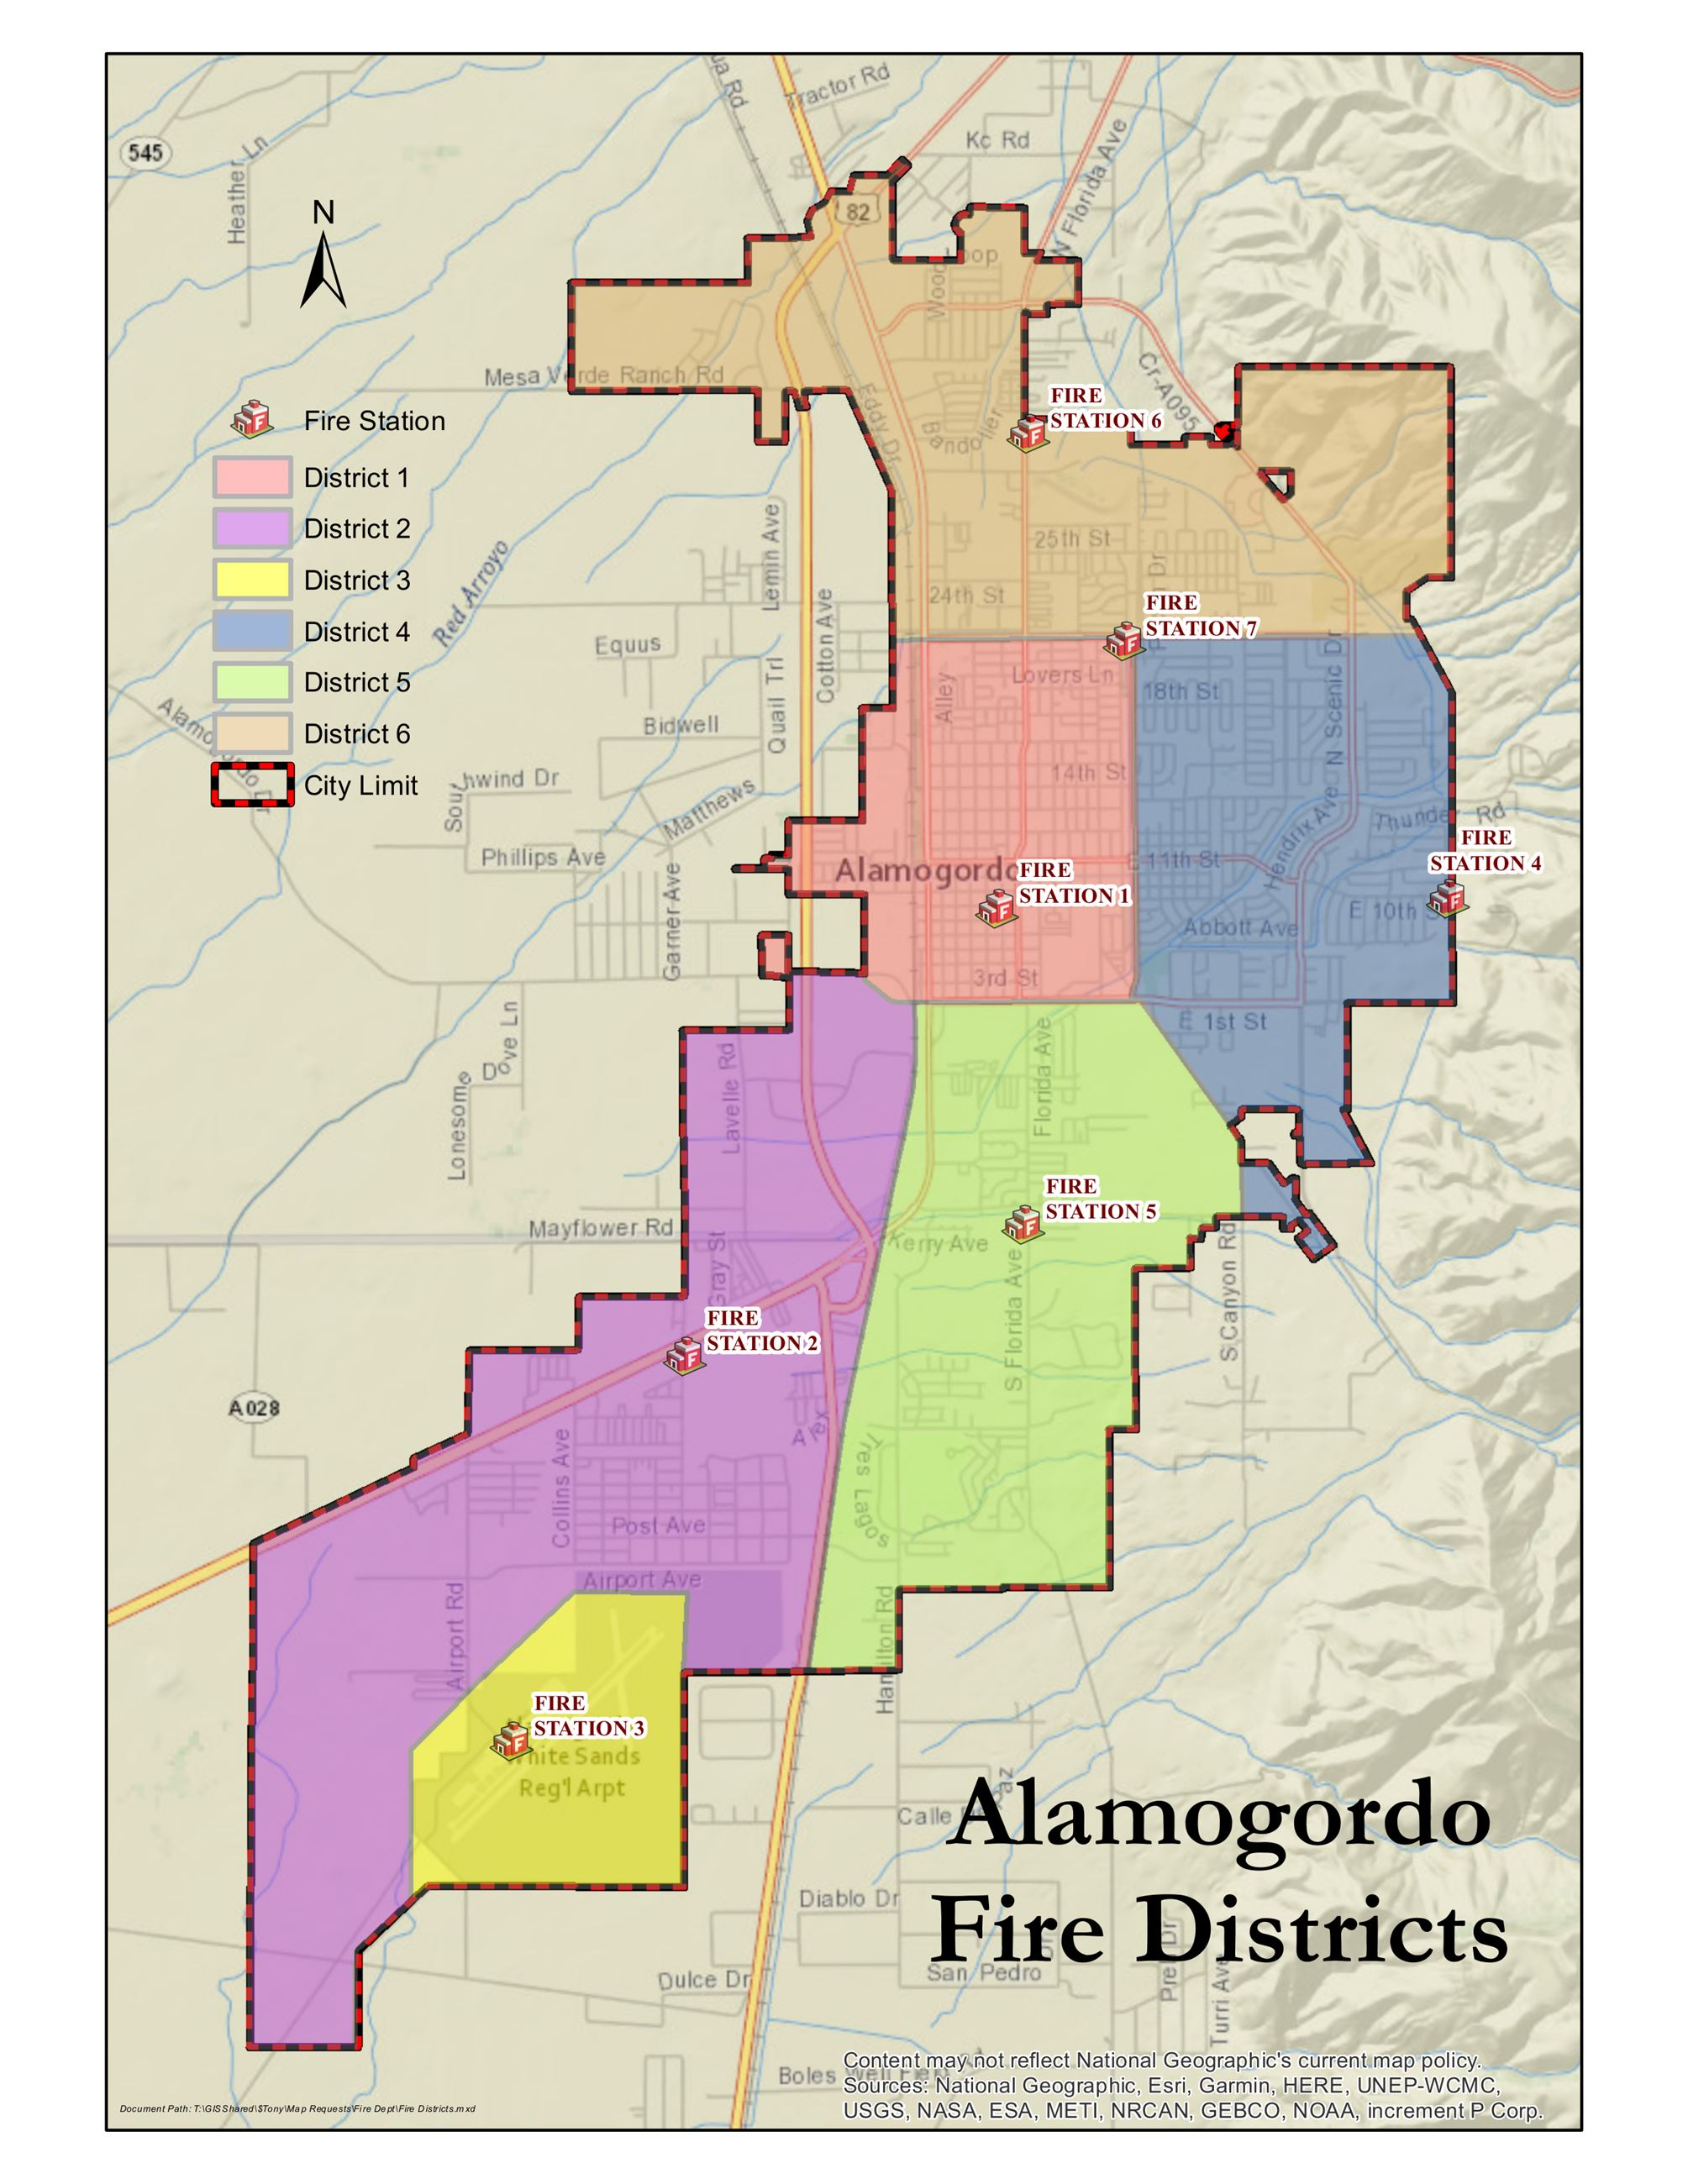 Map of Alamogordo Fire Districts